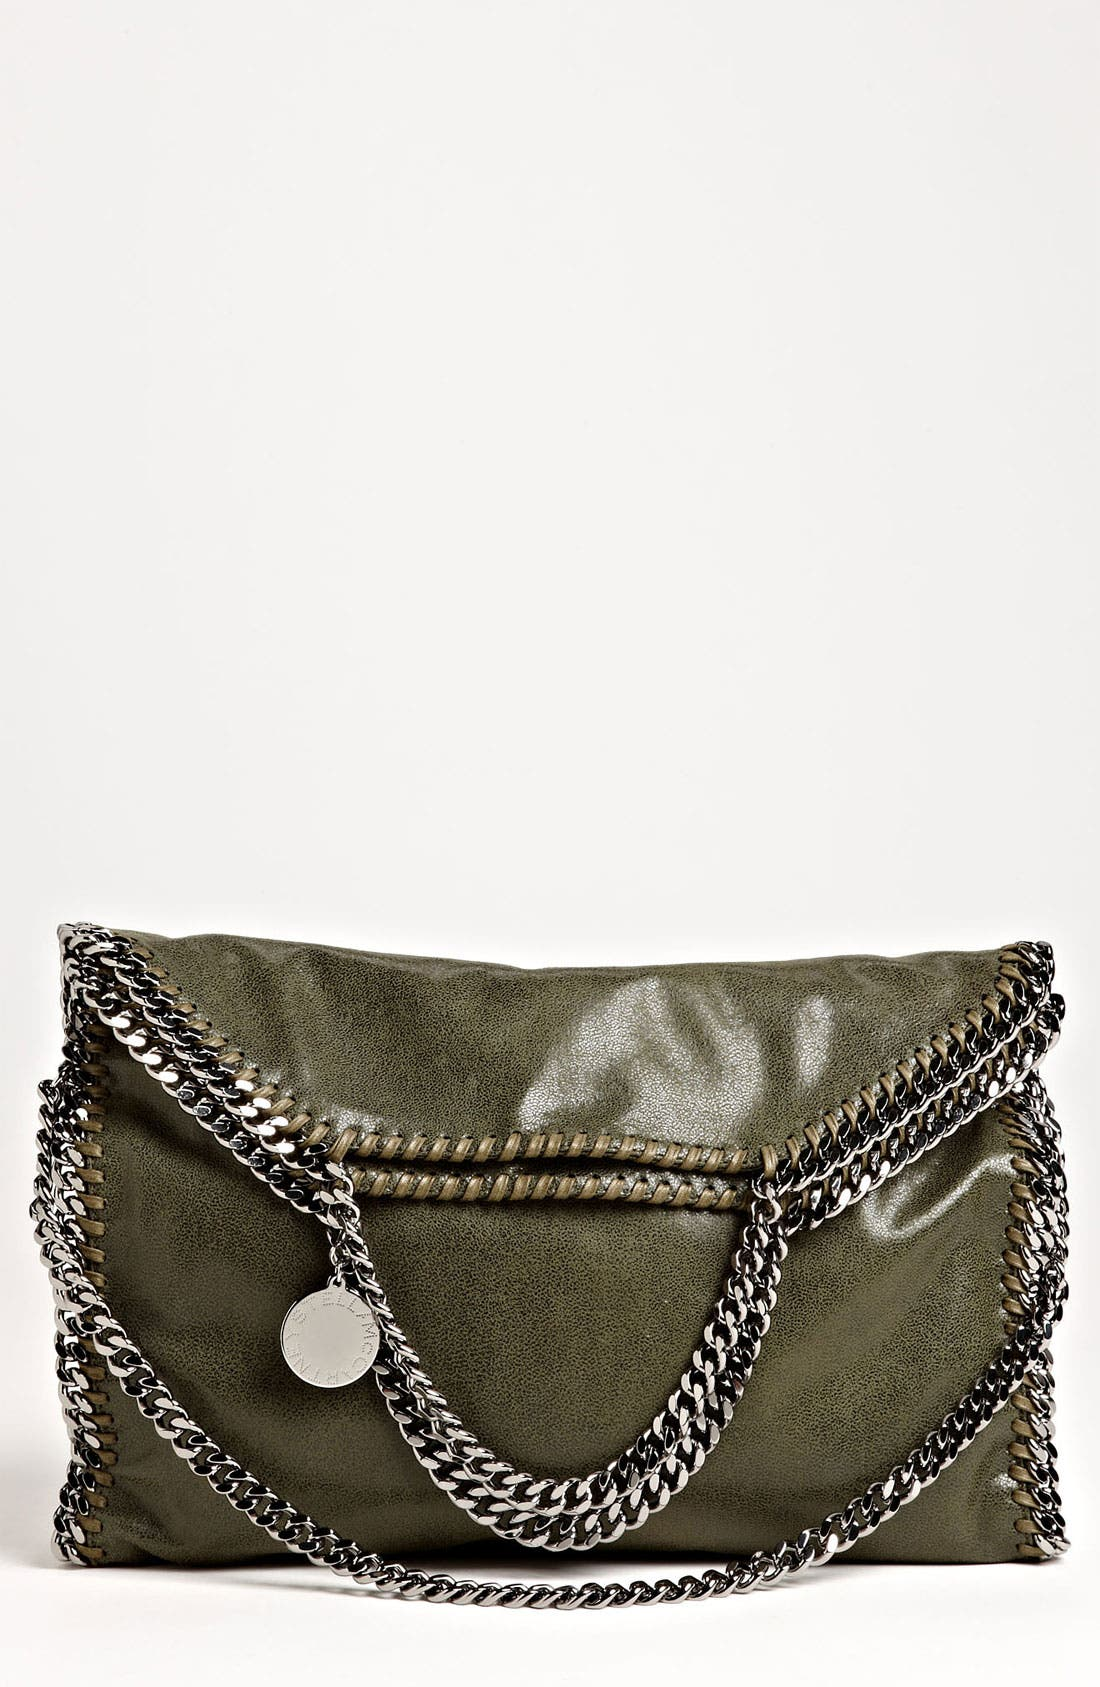 Alternate Image 1 Selected - Stella McCartney 'Falabella' Shaggy Deer Foldover Tote